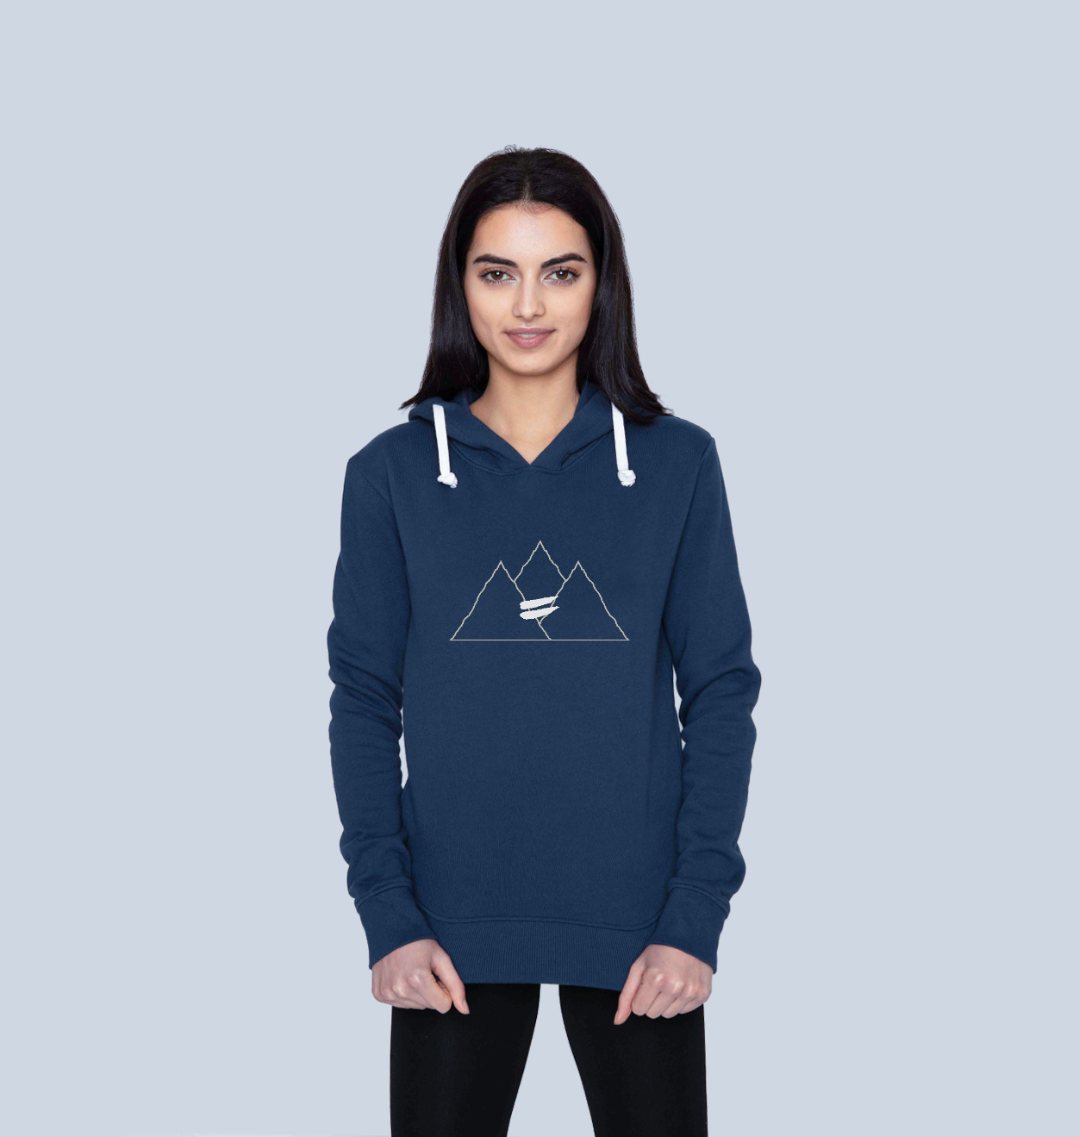 Summit Hoodie in Snow - Women's